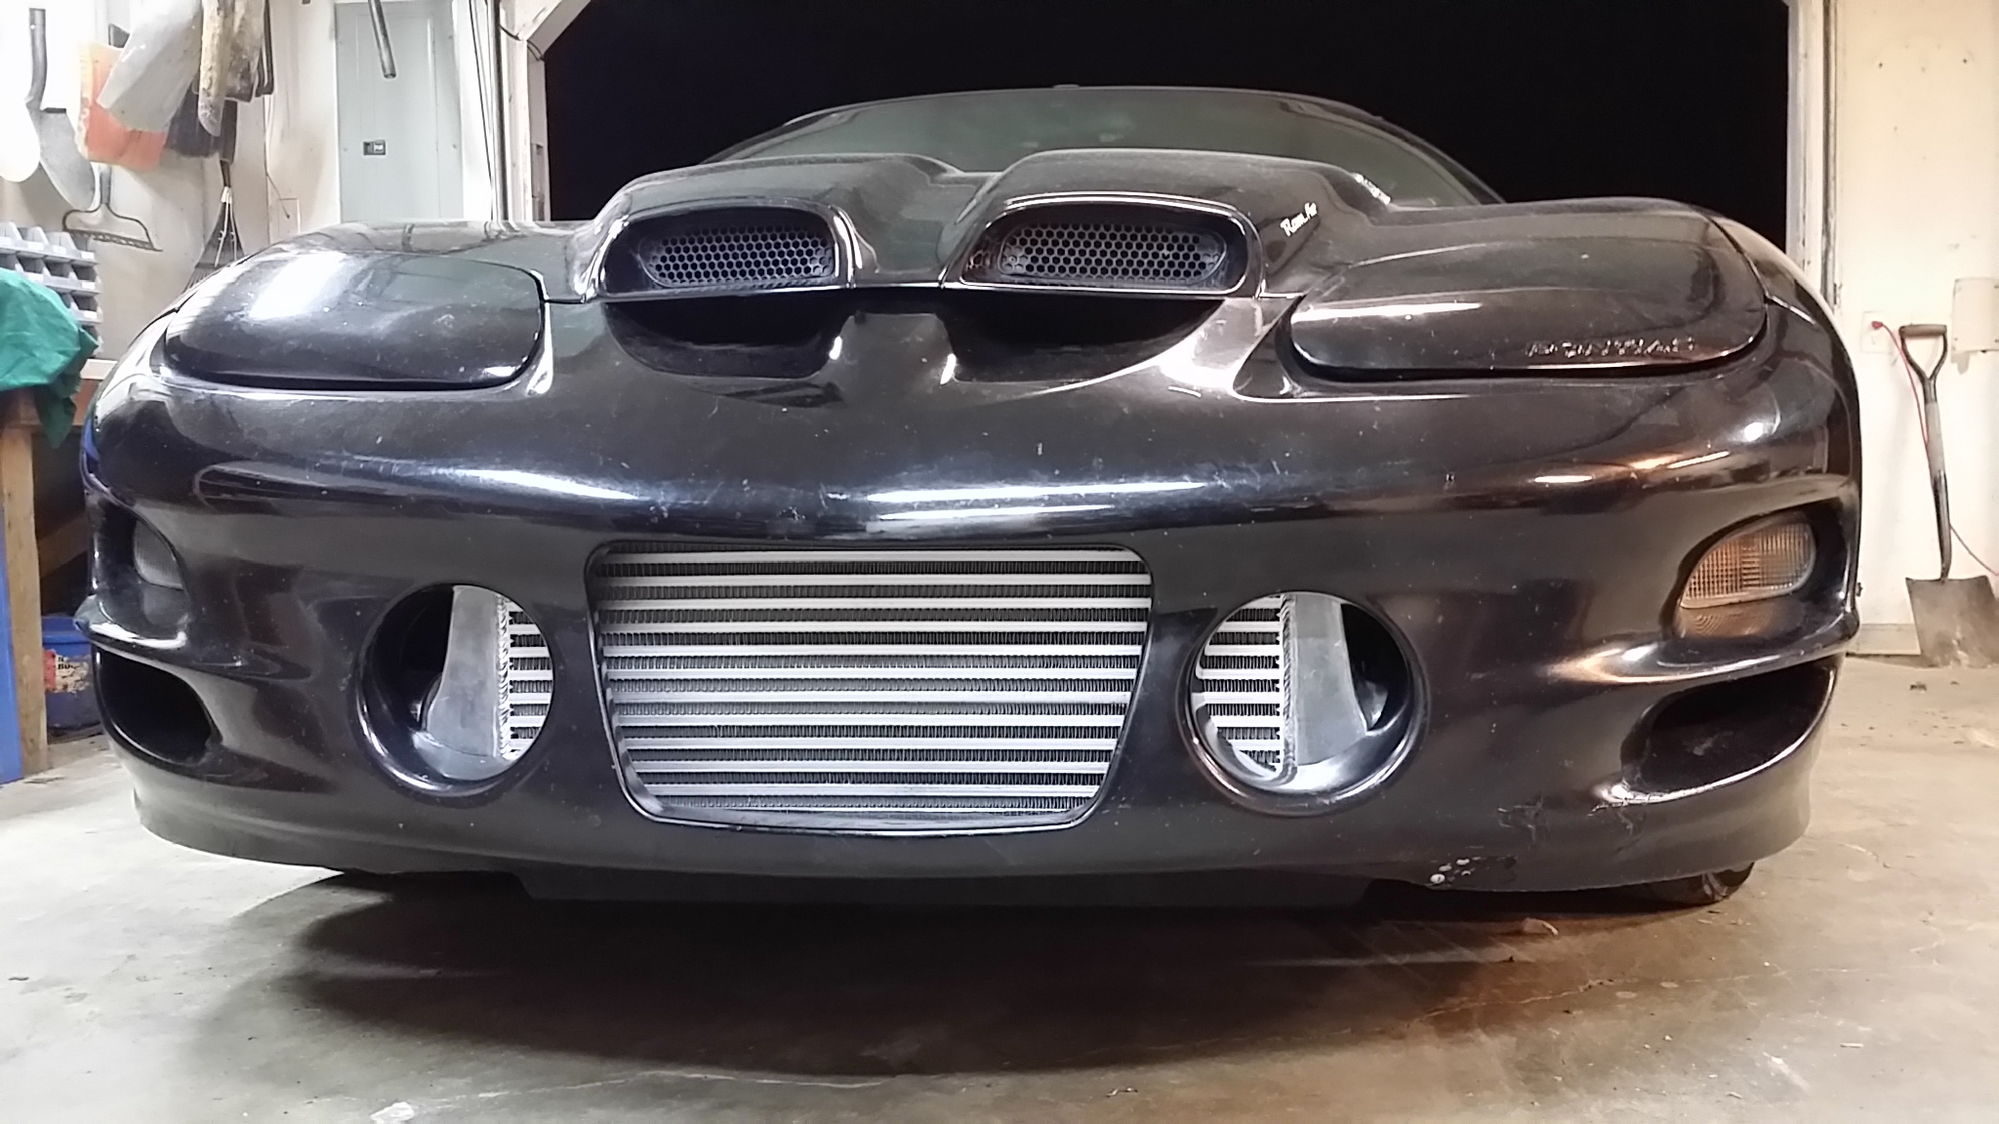 Fascia Removal Cx Racing Intercooler 4th Gen Trans Am Pics